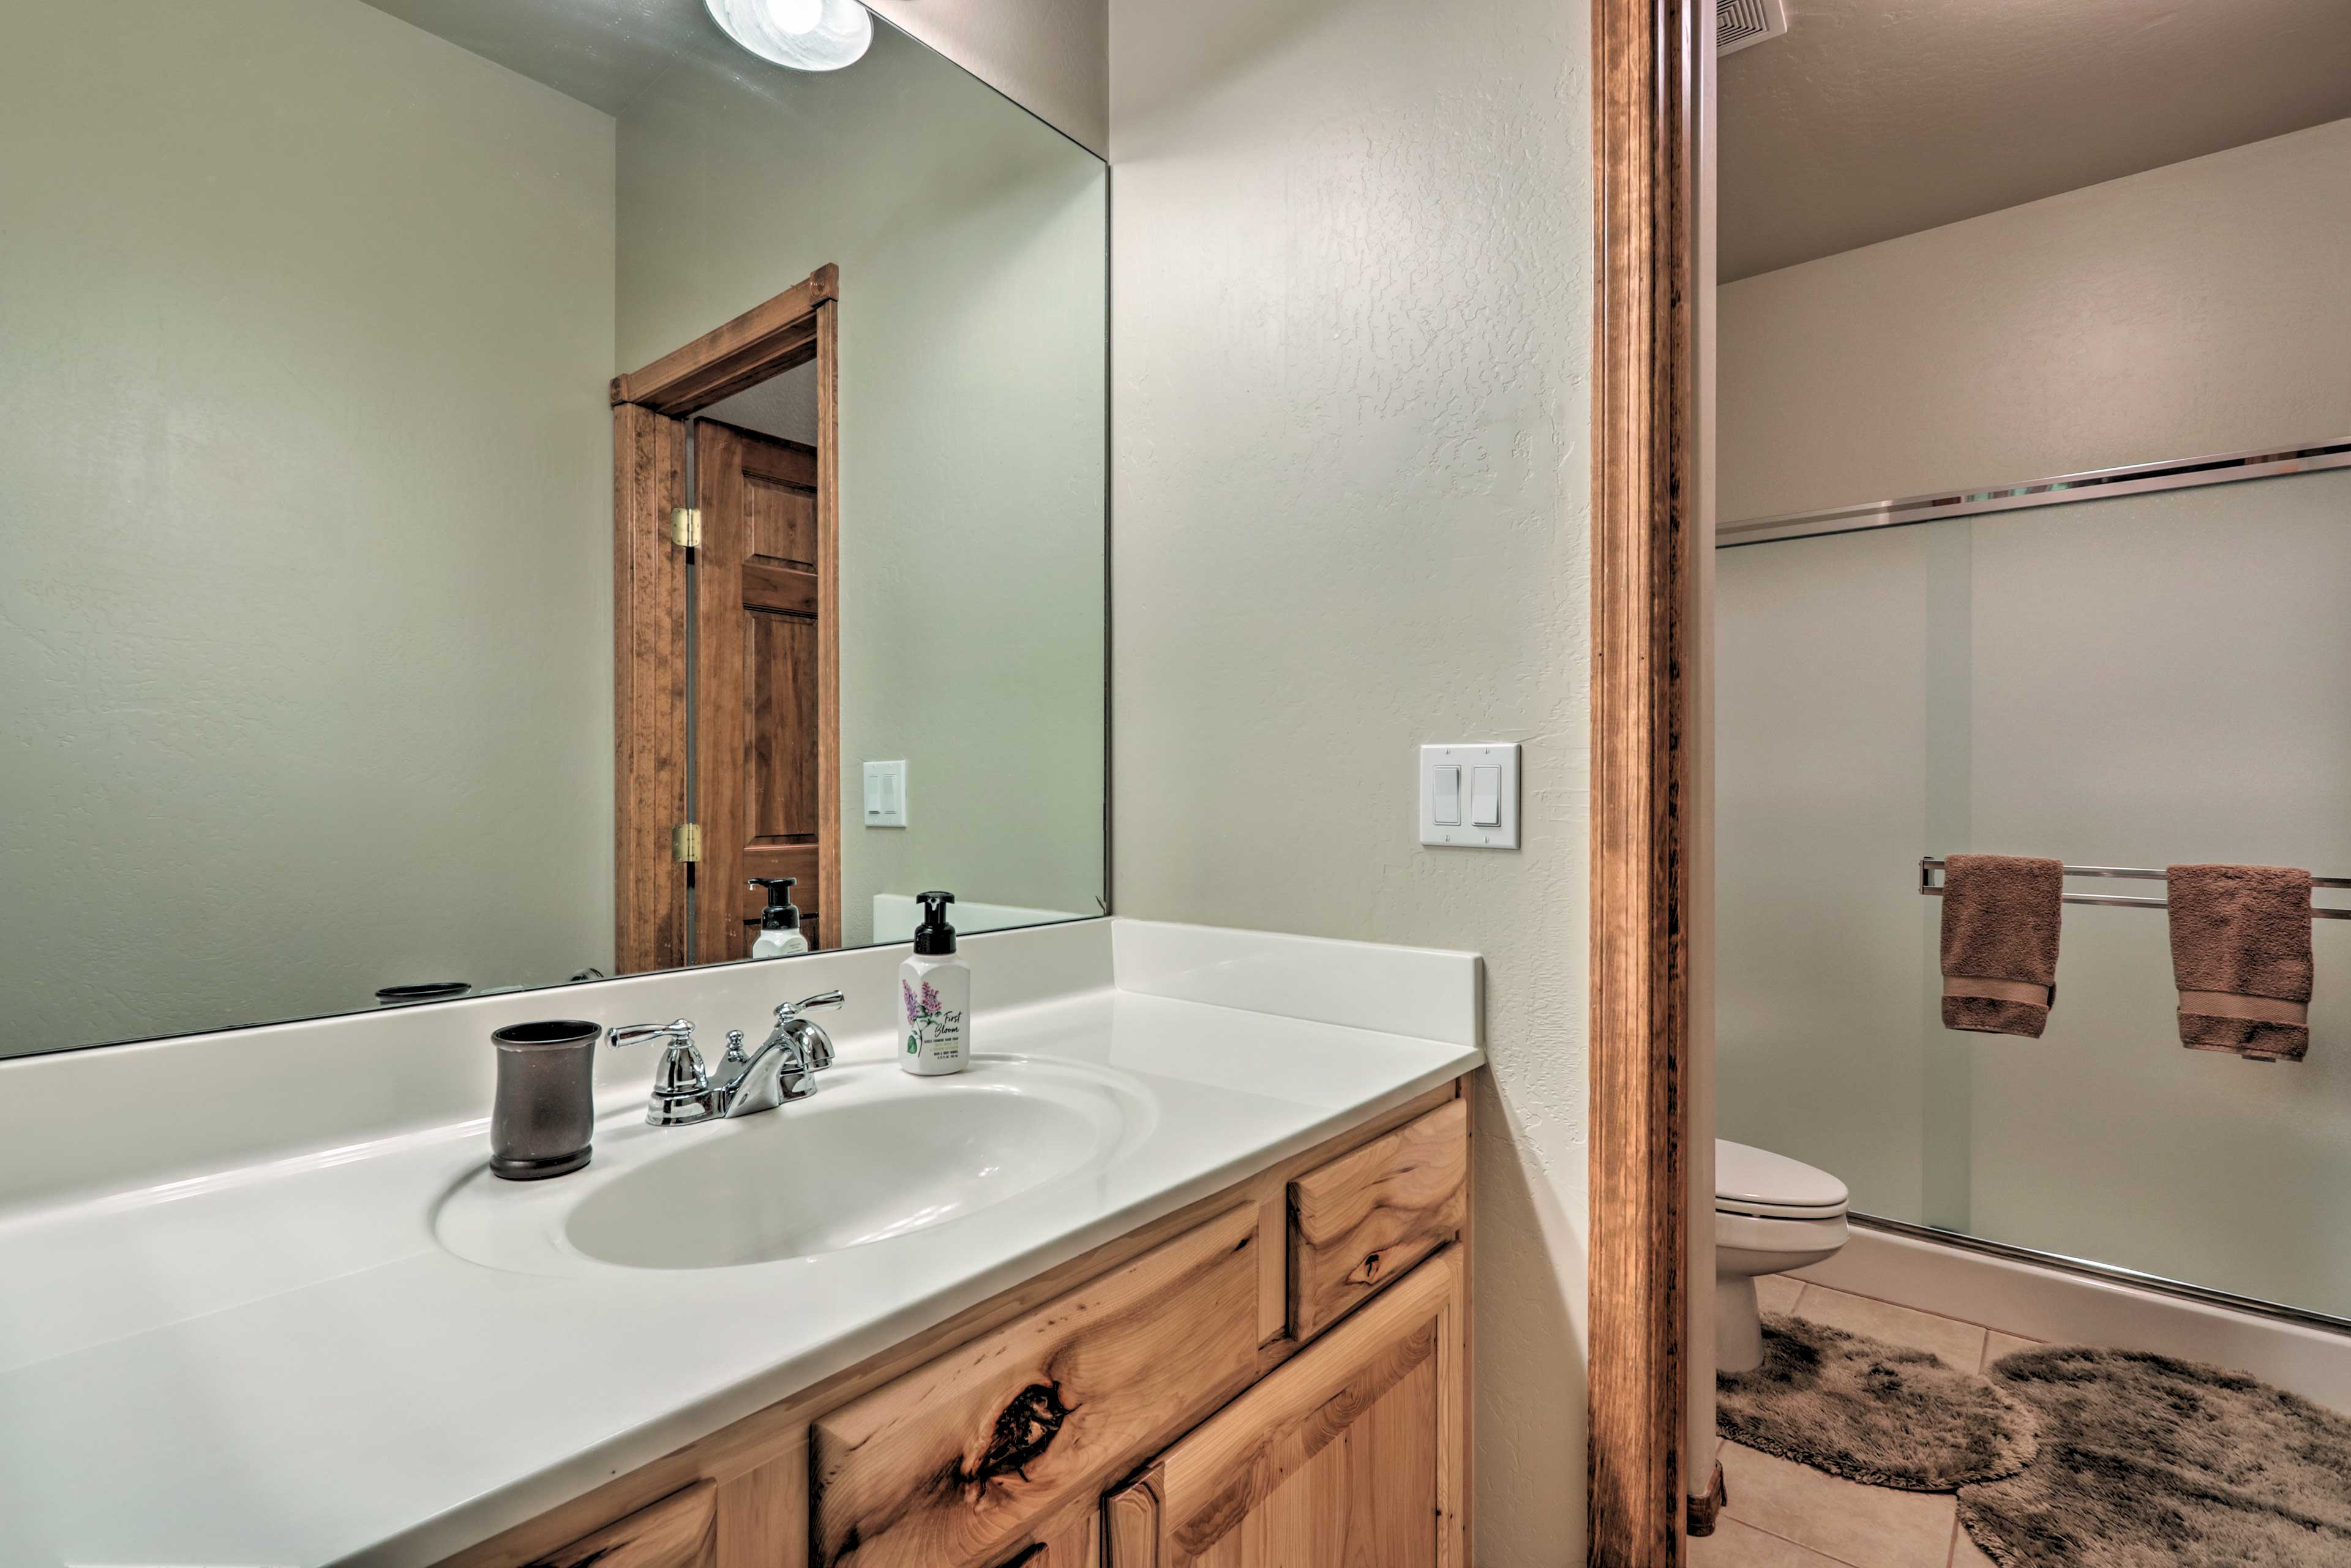 The home features 2 full bathrooms.